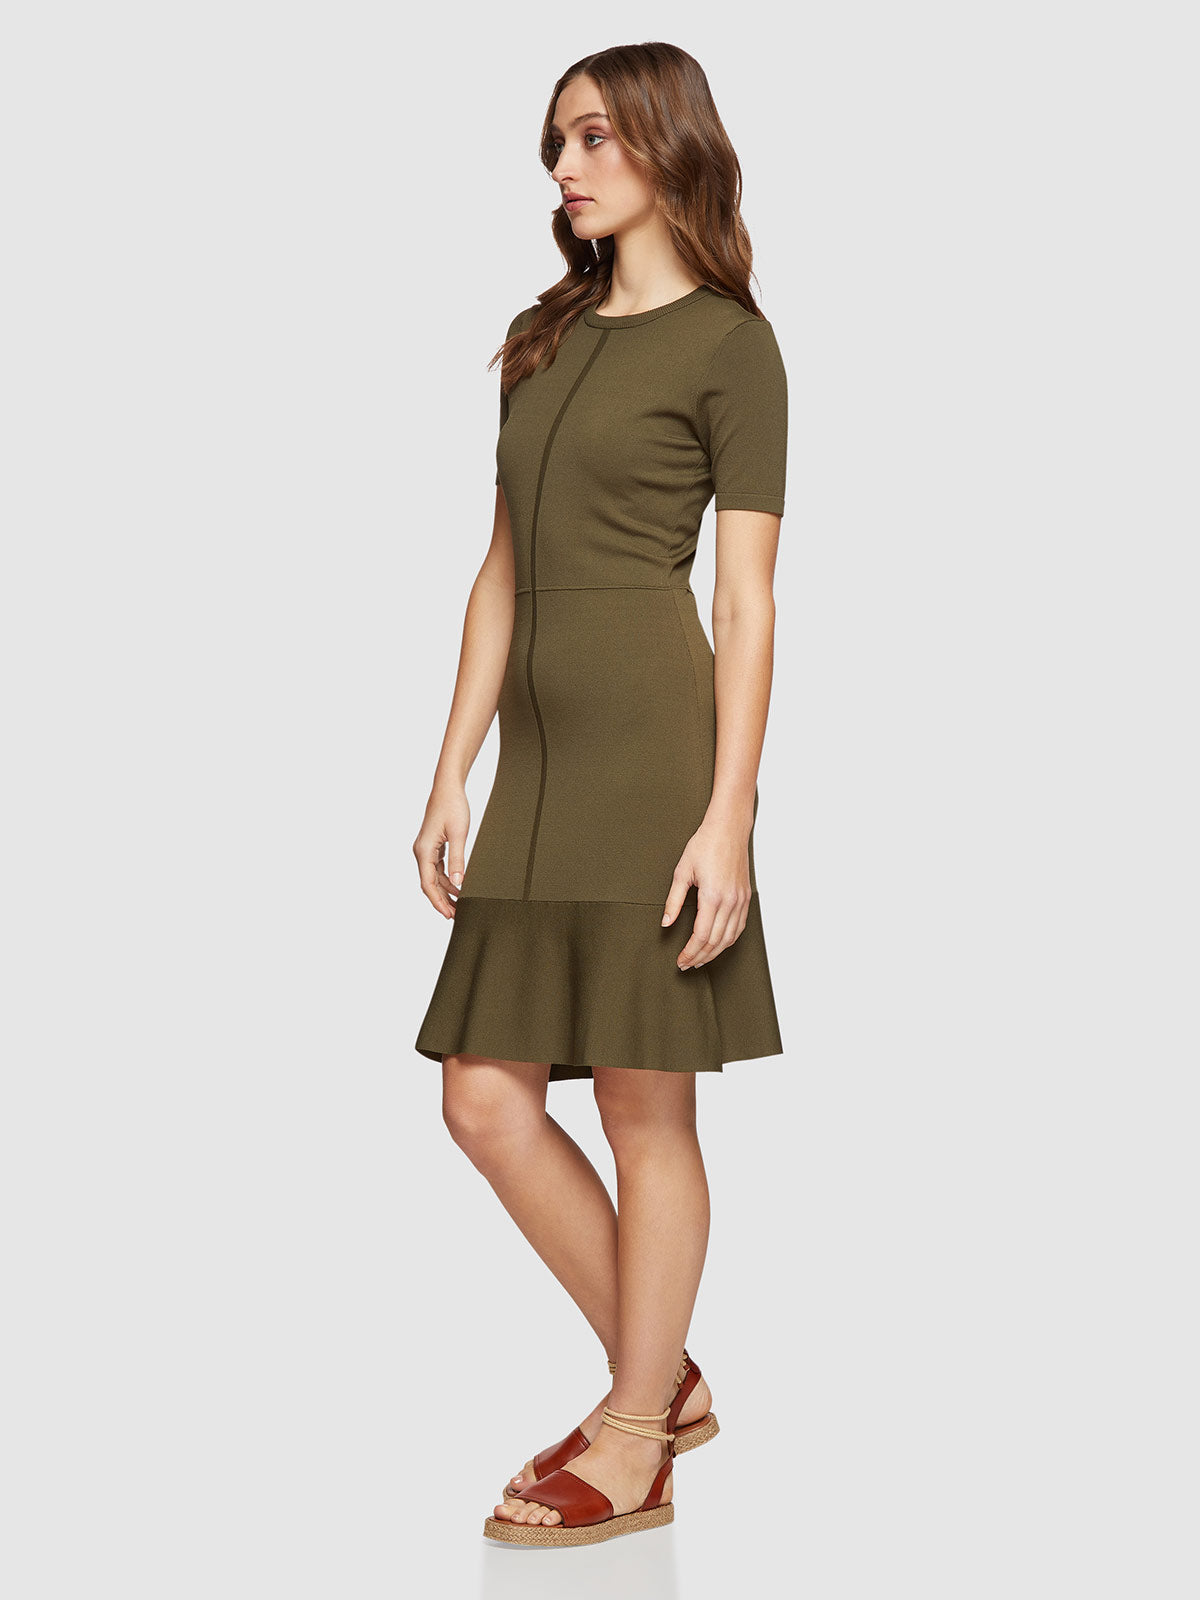 KIMMY SHORT SLEEVE KNITTED DRESS